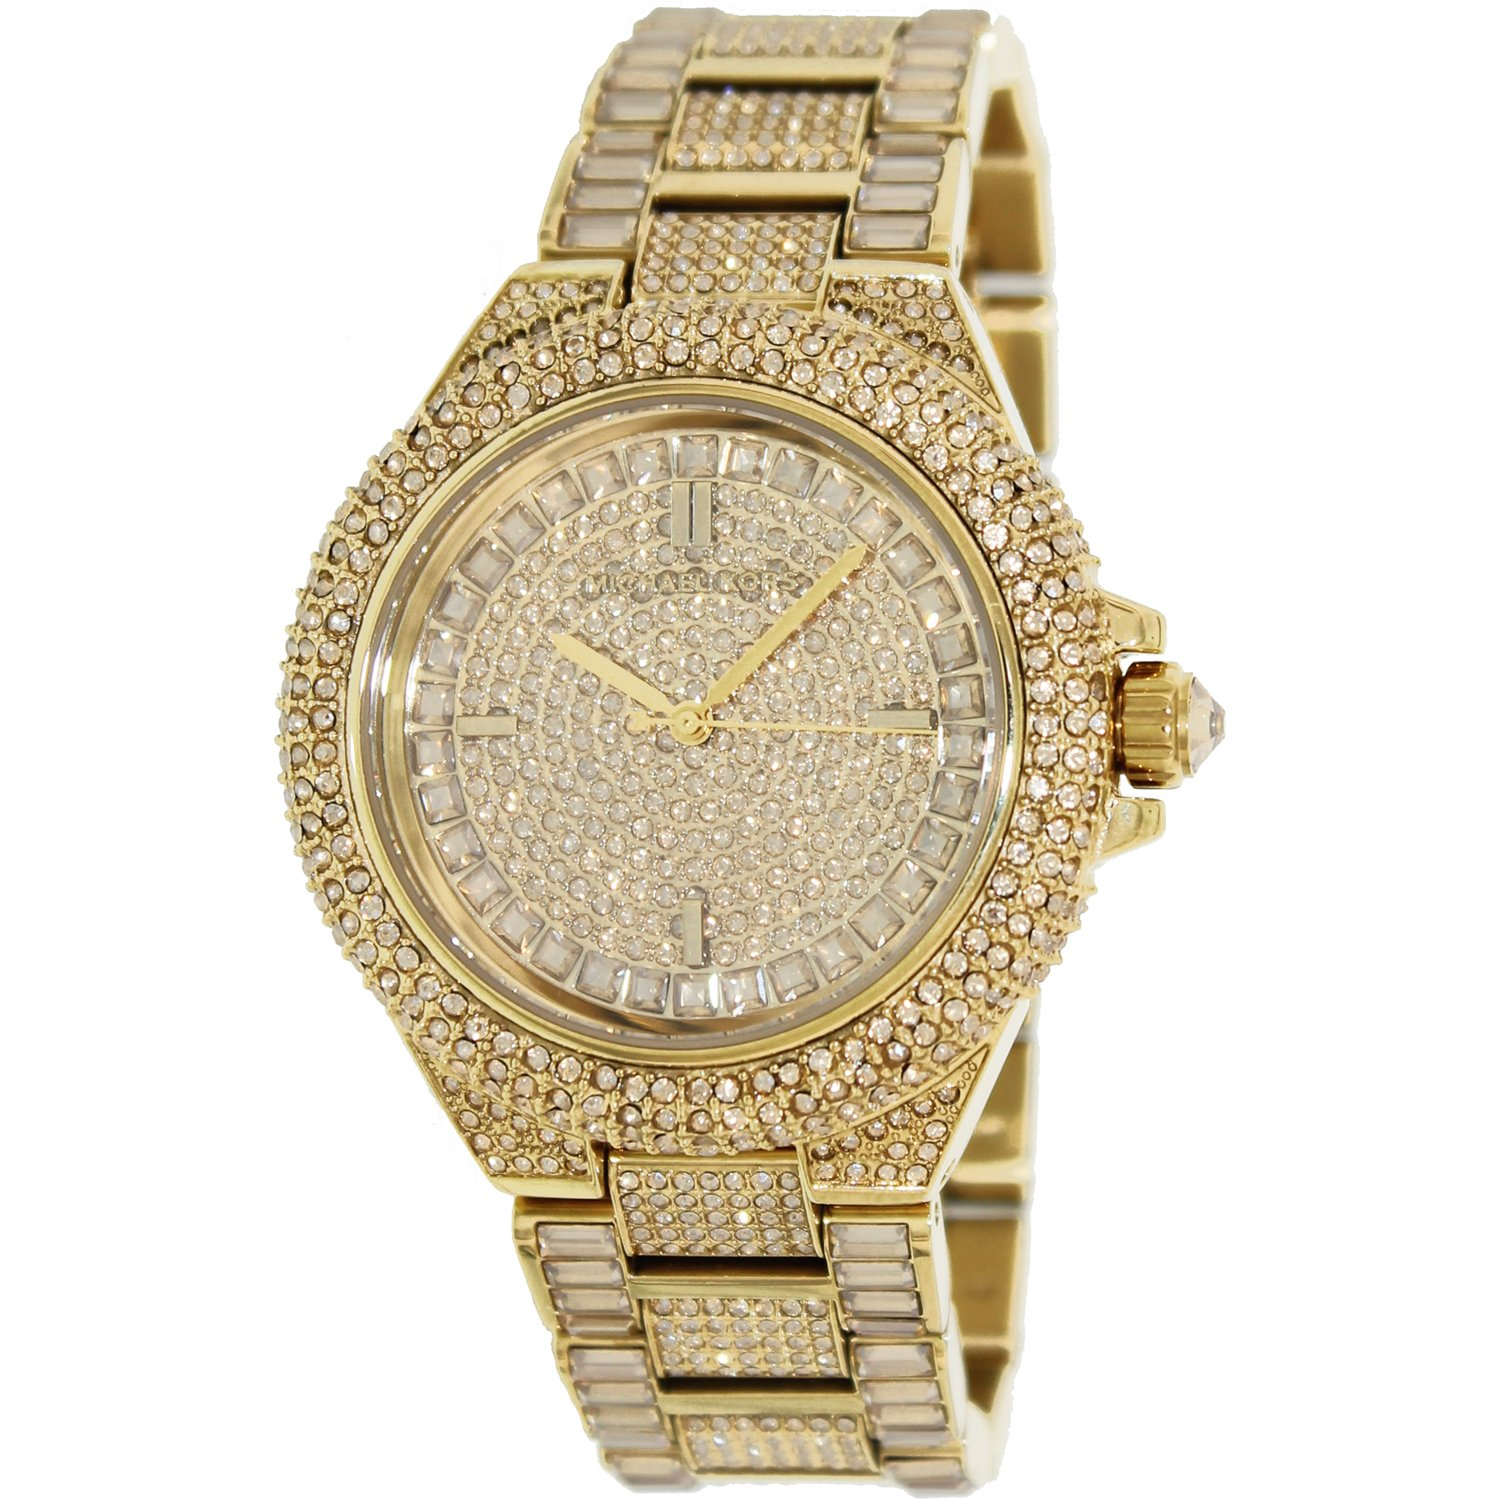 Michael Kors Women's Camille MK5720 Gold Stainless-Steel Japanese Quartz Fashion Watch